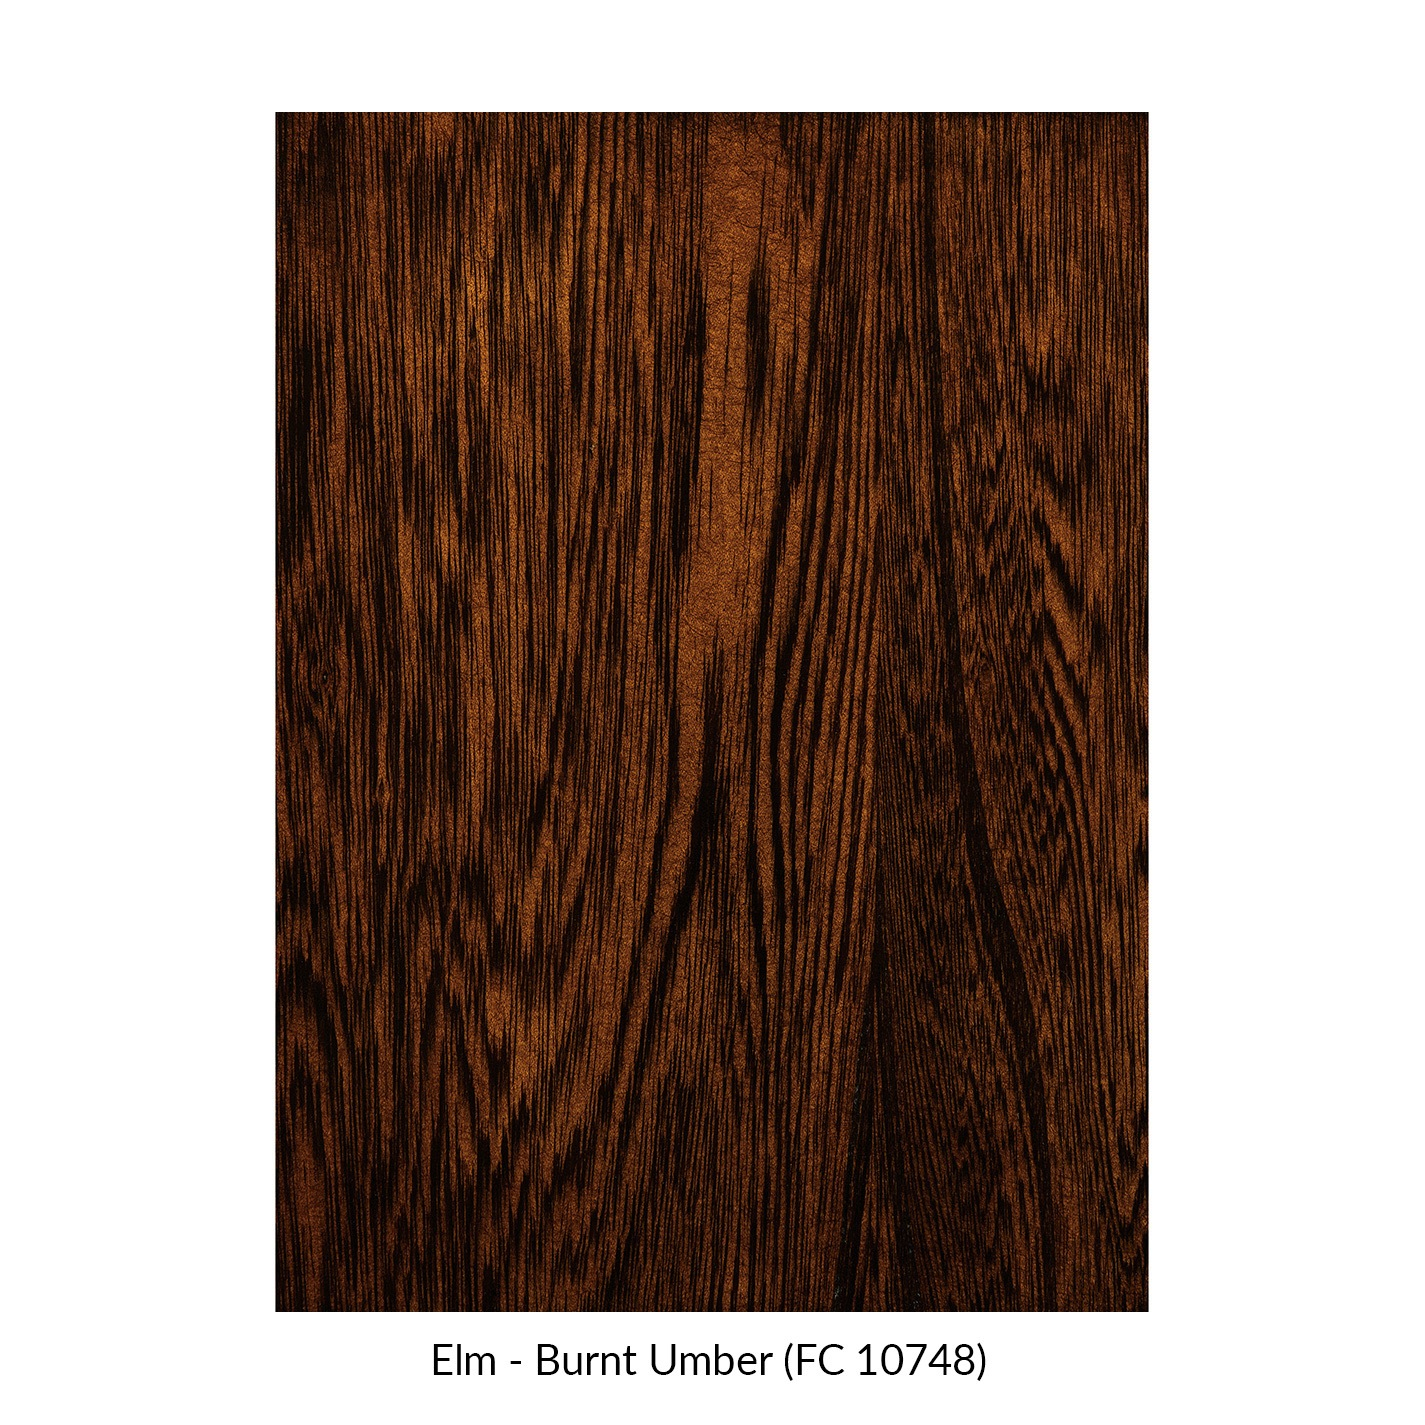 spectrum-elm-burnt-umber-fc-10748.jpg